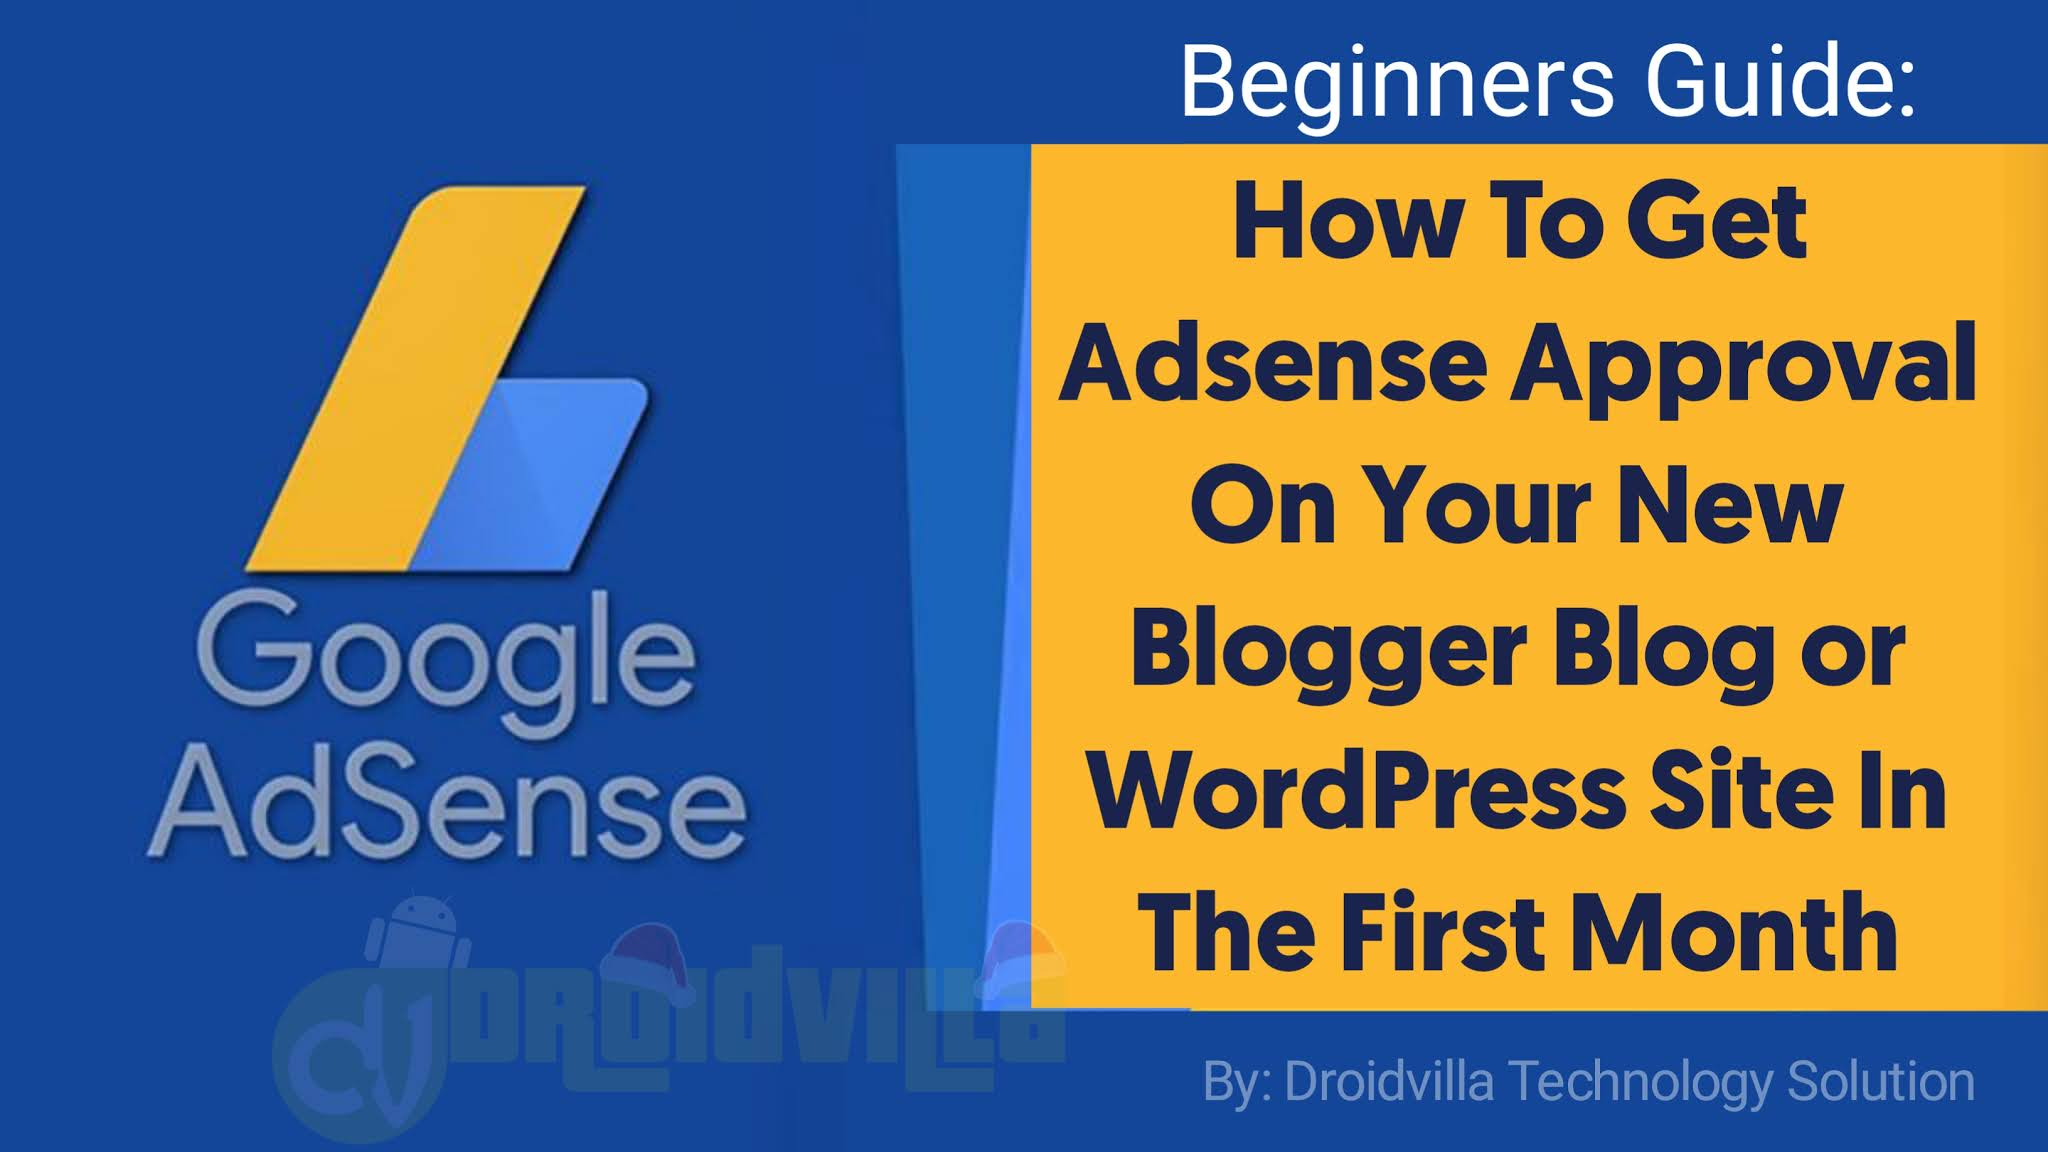 Adsense Approval on new sites